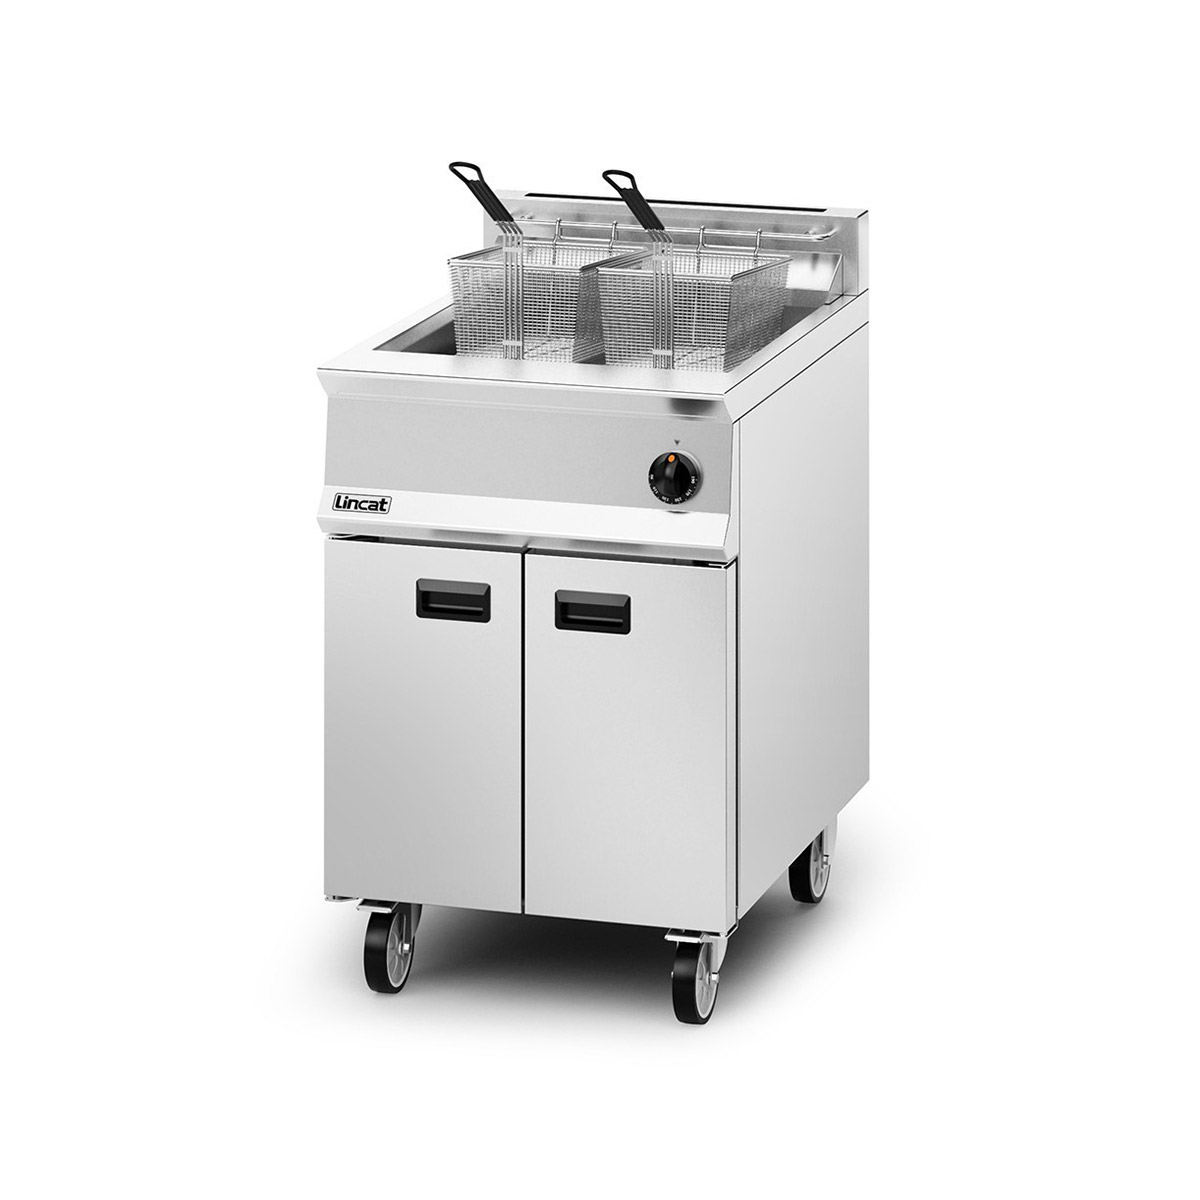 Lincat Opus 800 Gas Fryer Model: OG8107/N (Natural Gas)